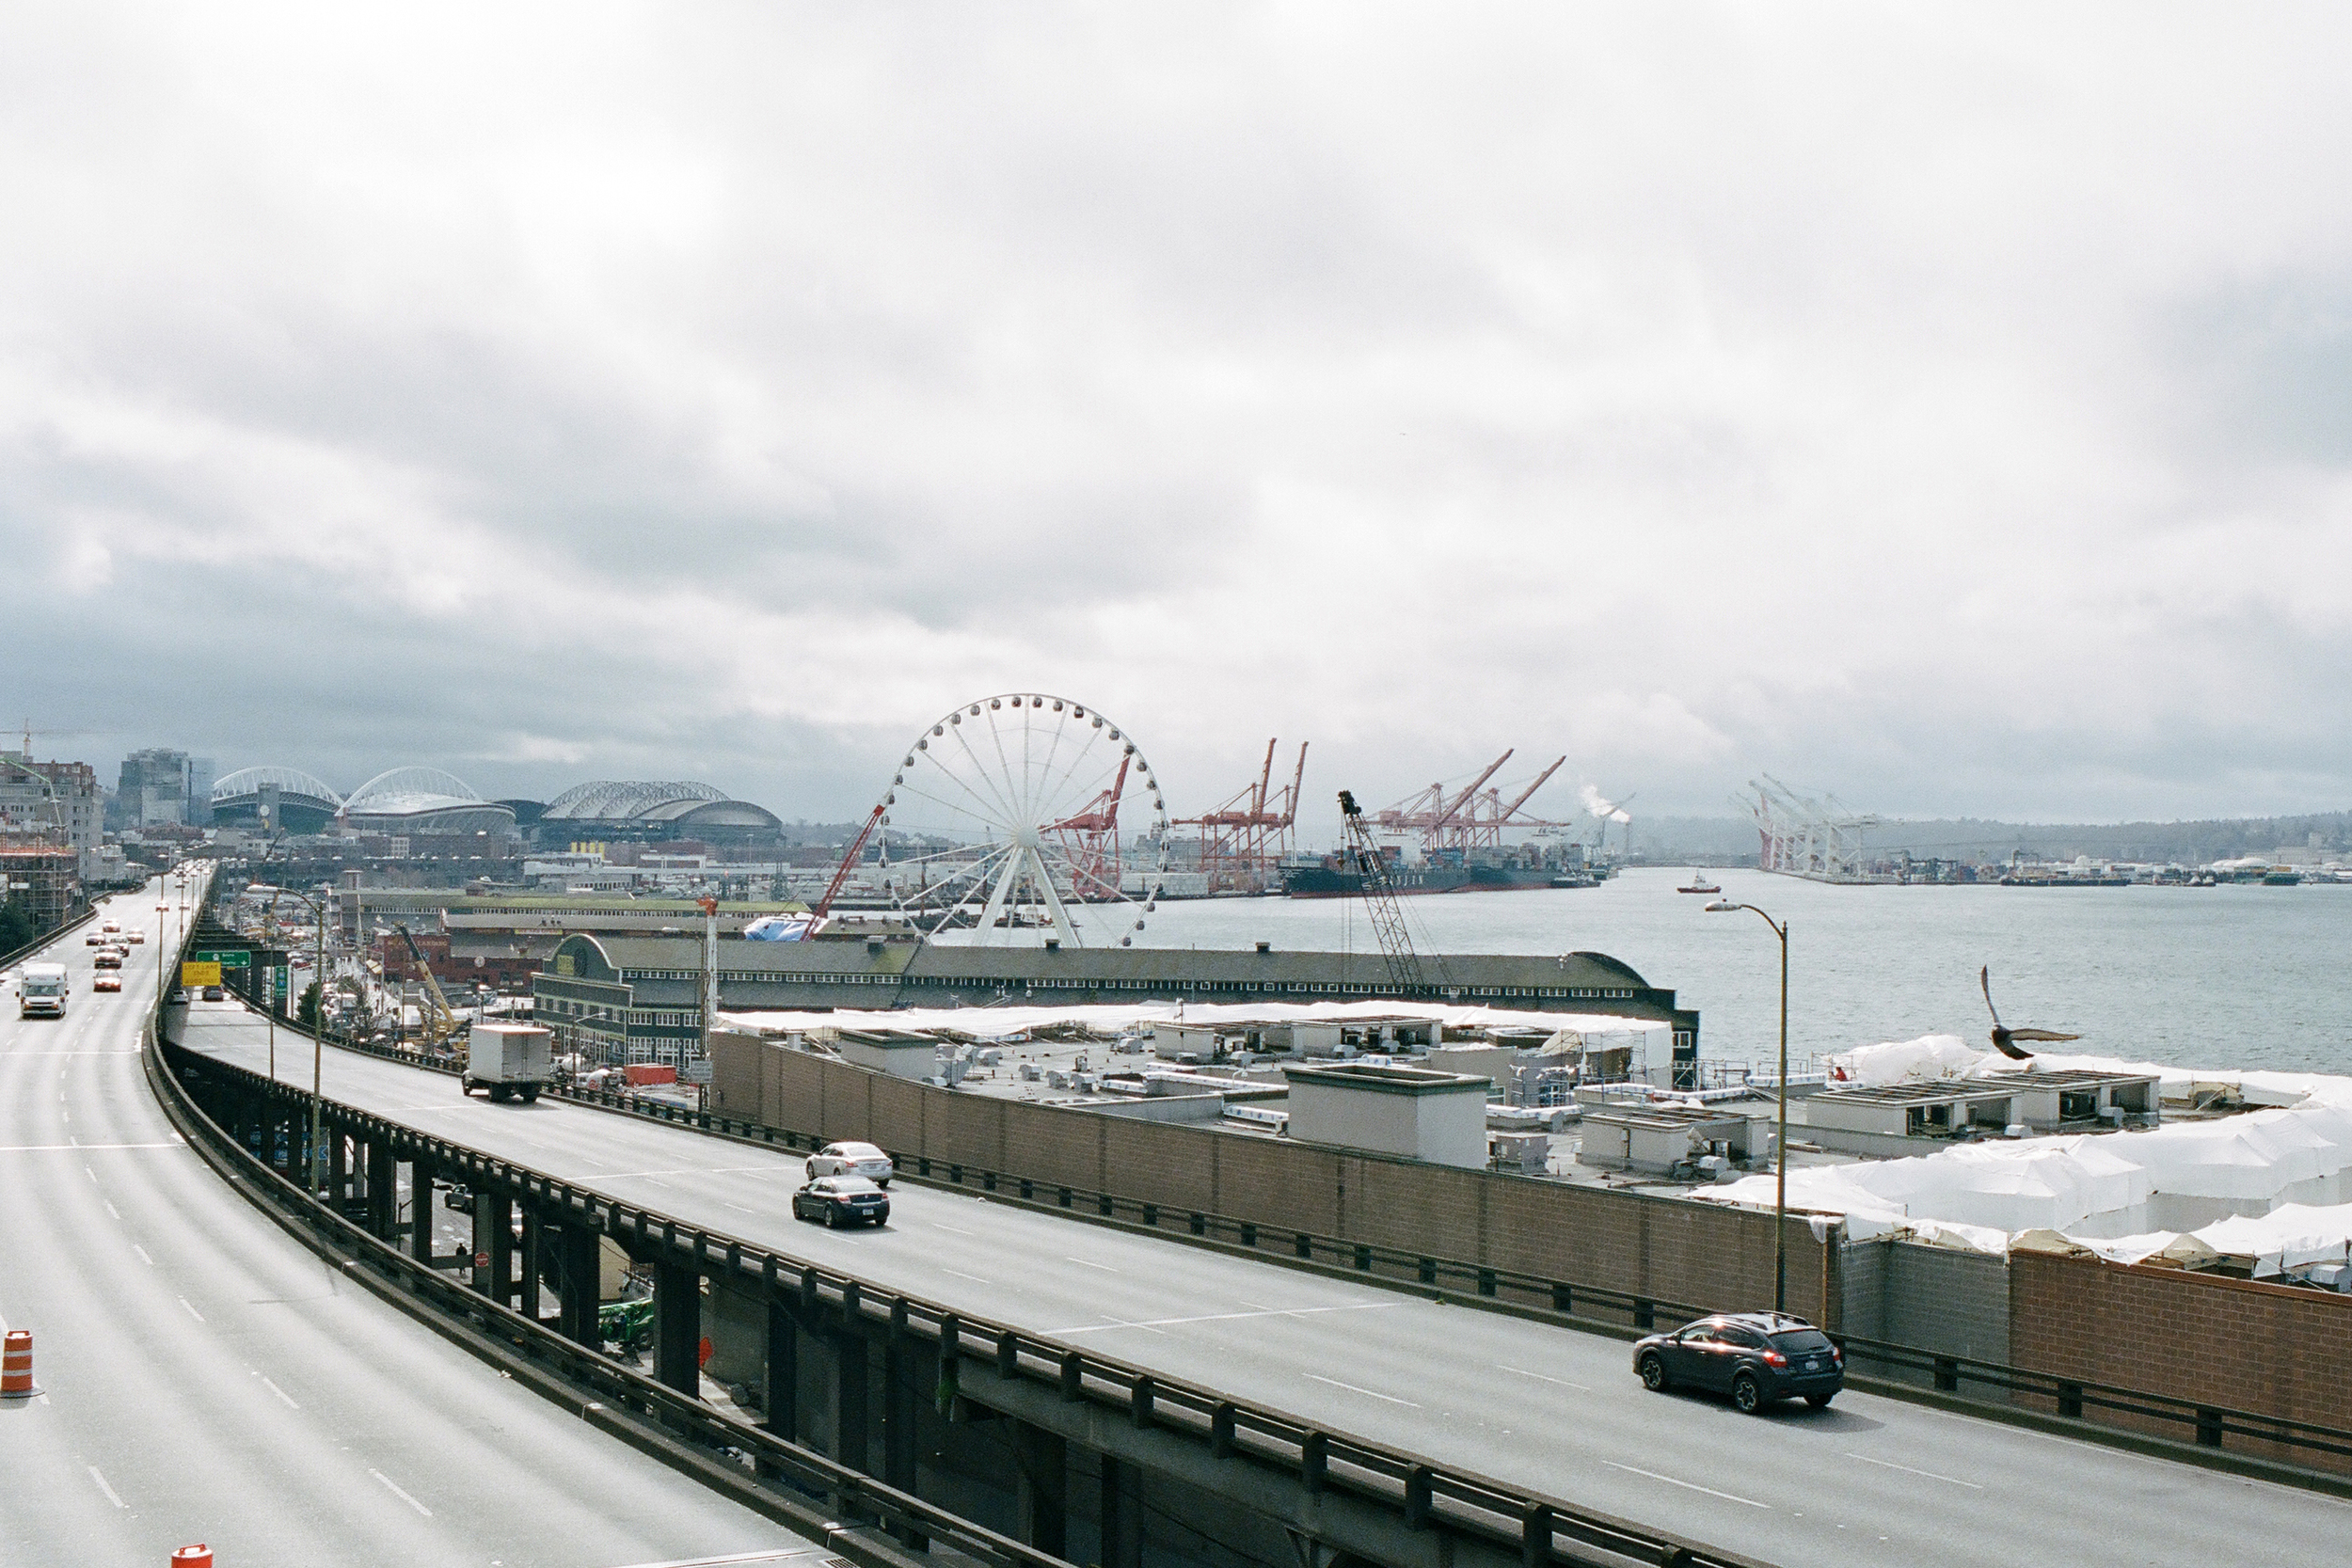 seattle-film-travel-photographer-jenny-karlsson-003.jpg